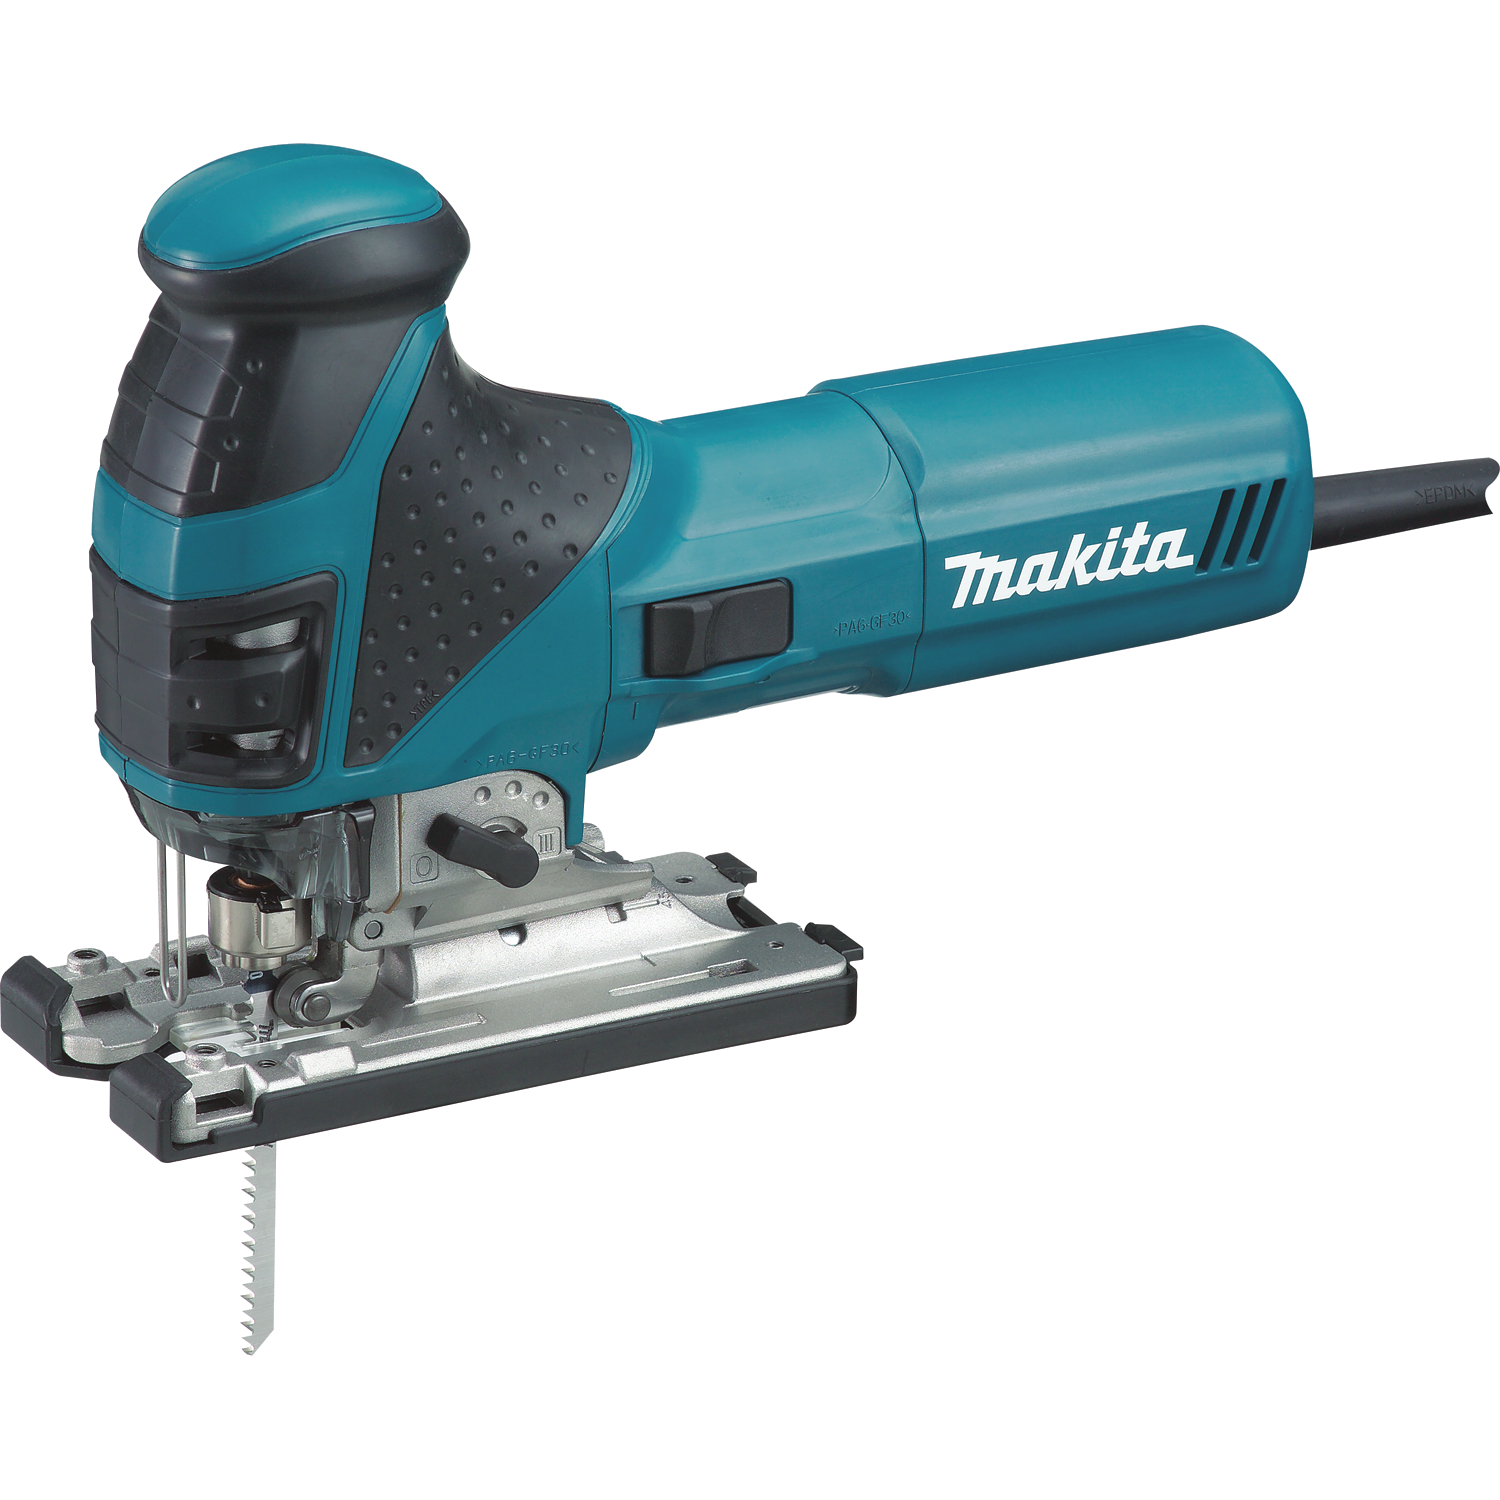 Makita usa product details 4351fct 4351fct greentooth Images